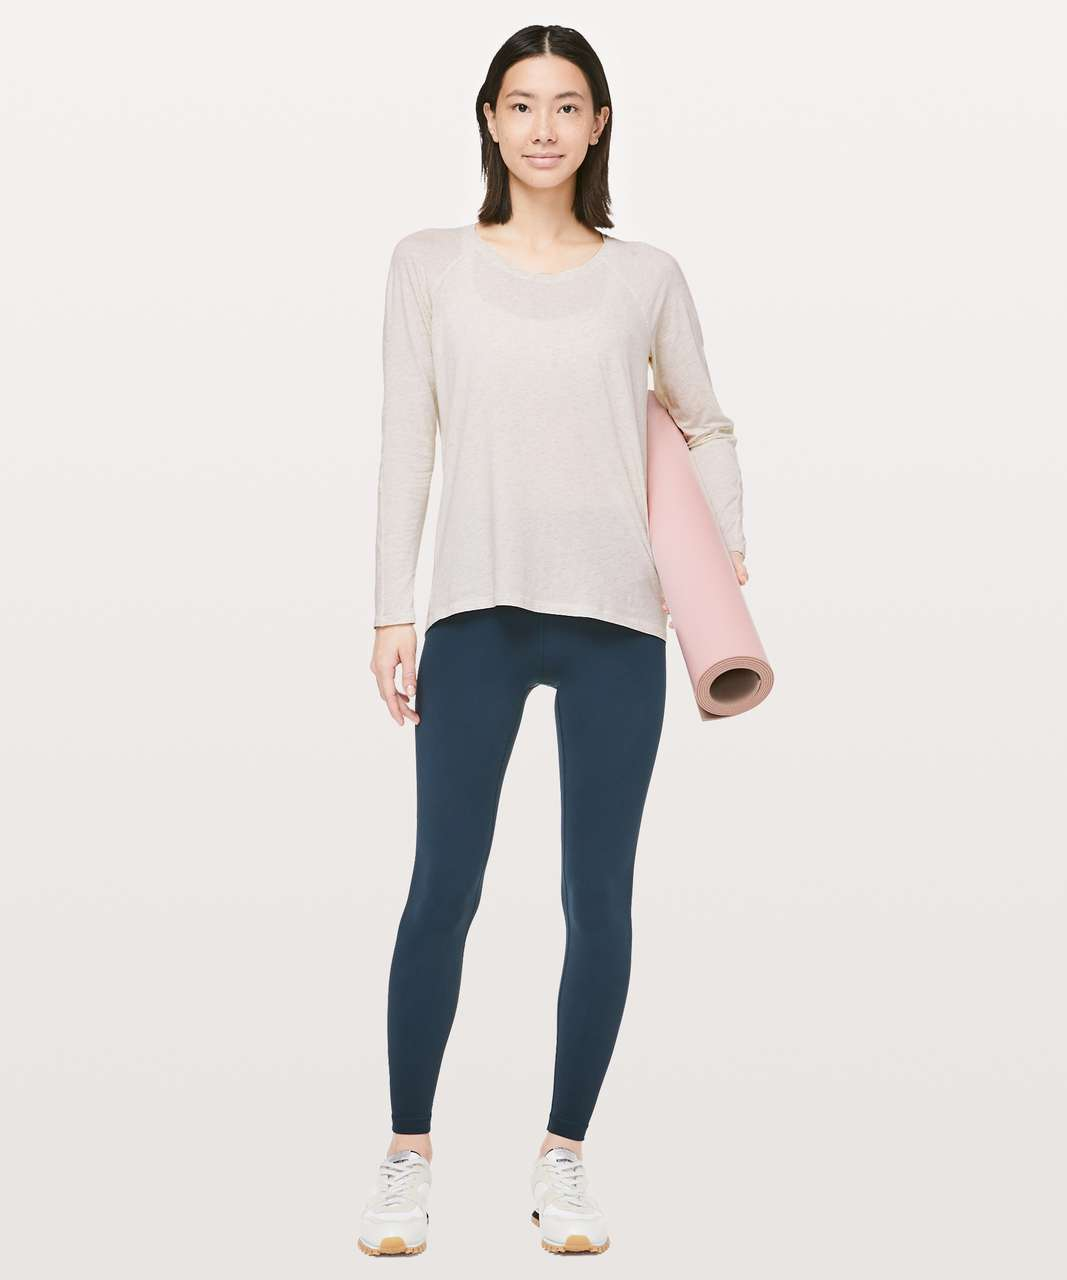 Lululemon Emerald Long Sleeve - Heathered Dove Grey (First Release)